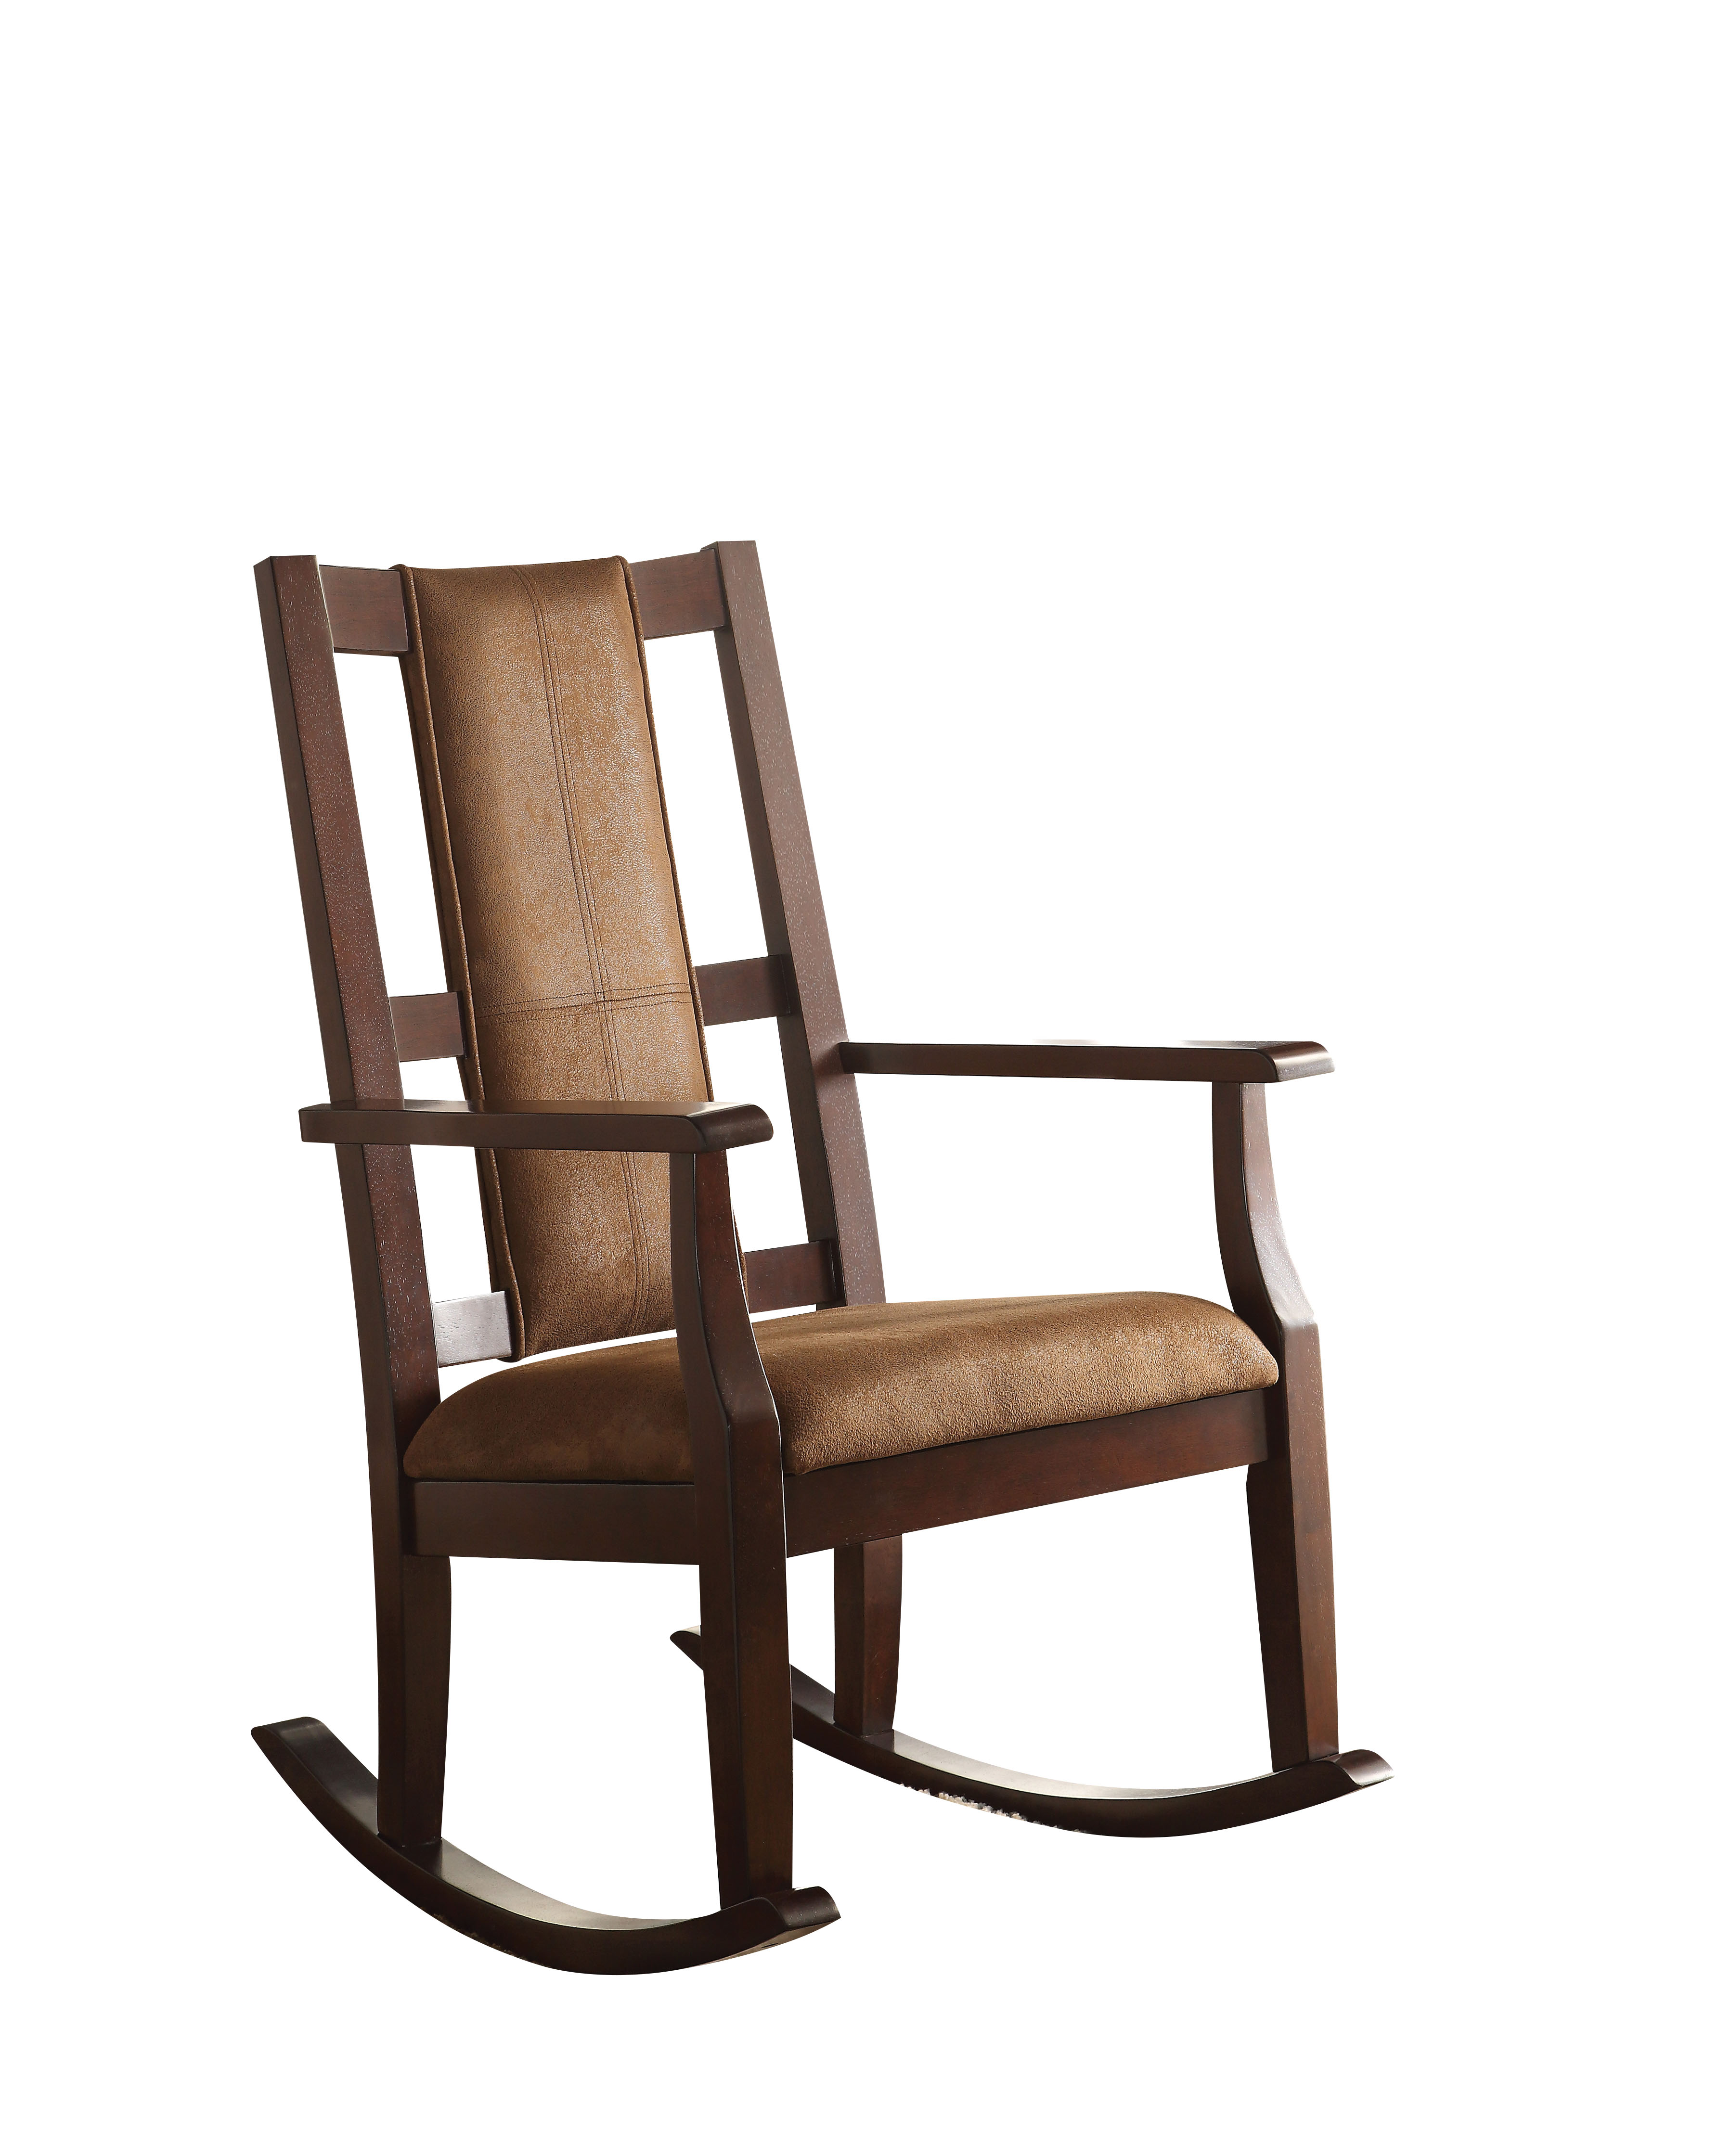 Best Place To Buy Rocking Chairs Acme Butsea Rocking Chair Brown Fabric Espresso